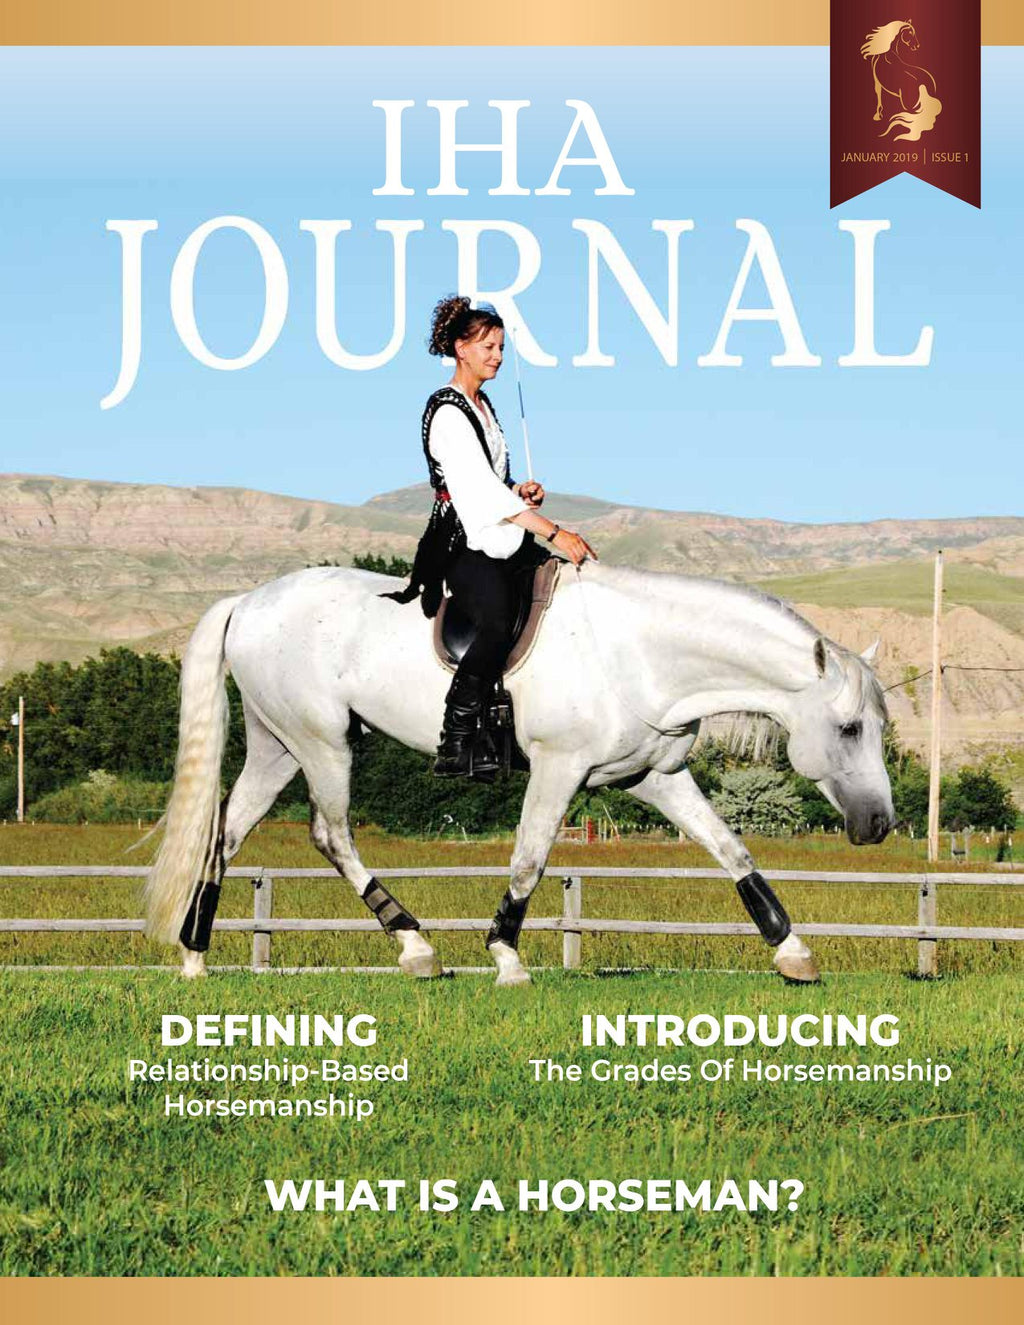 IHA Journal - Hard Copy Print Magazine Subscription